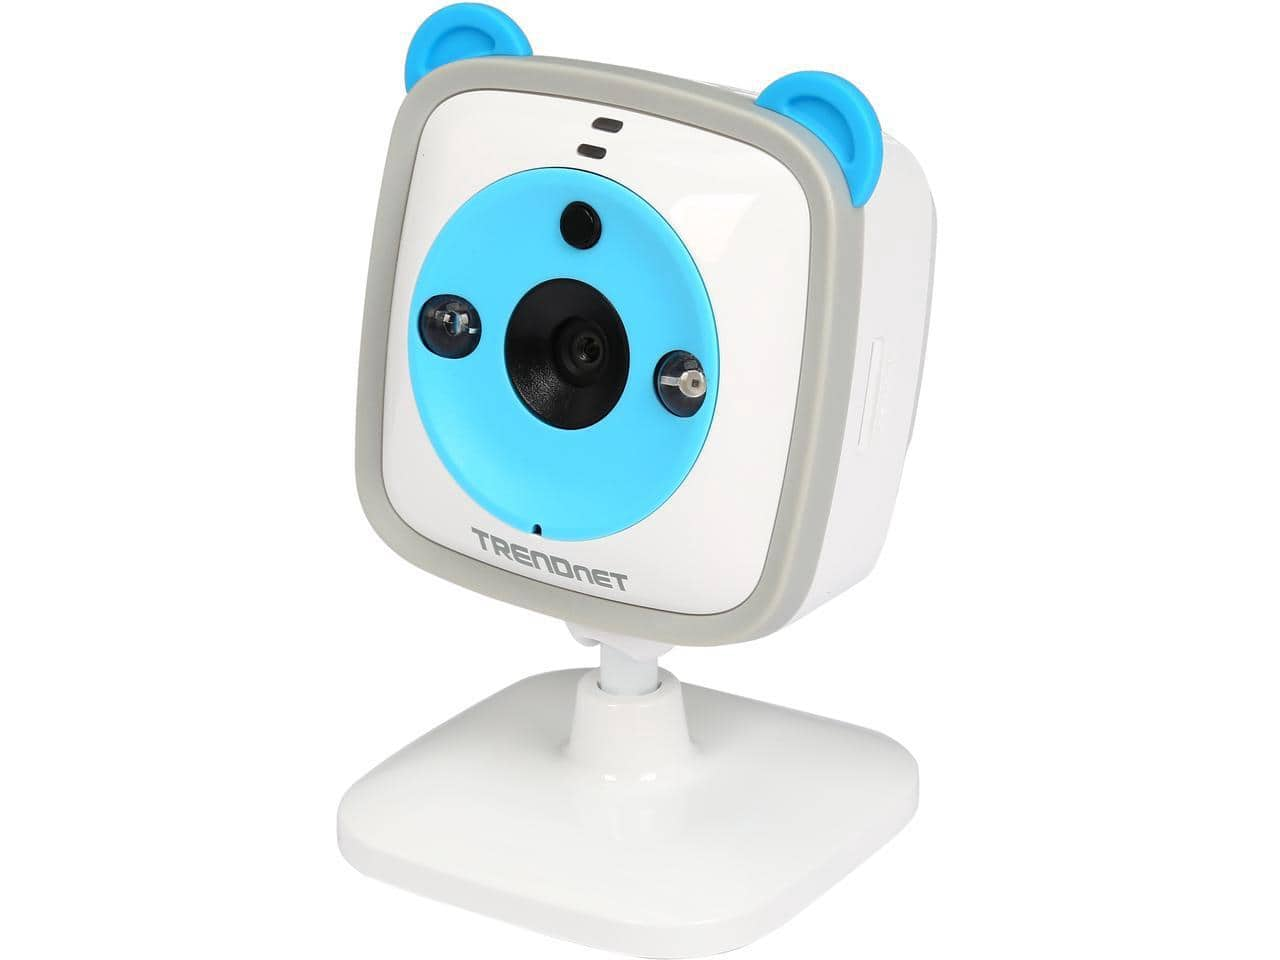 TRENDnet TV-IP745SIC Wi-Fi HD 720P Built-In Thermometer 2 Way Audio Baby Camera $22.99